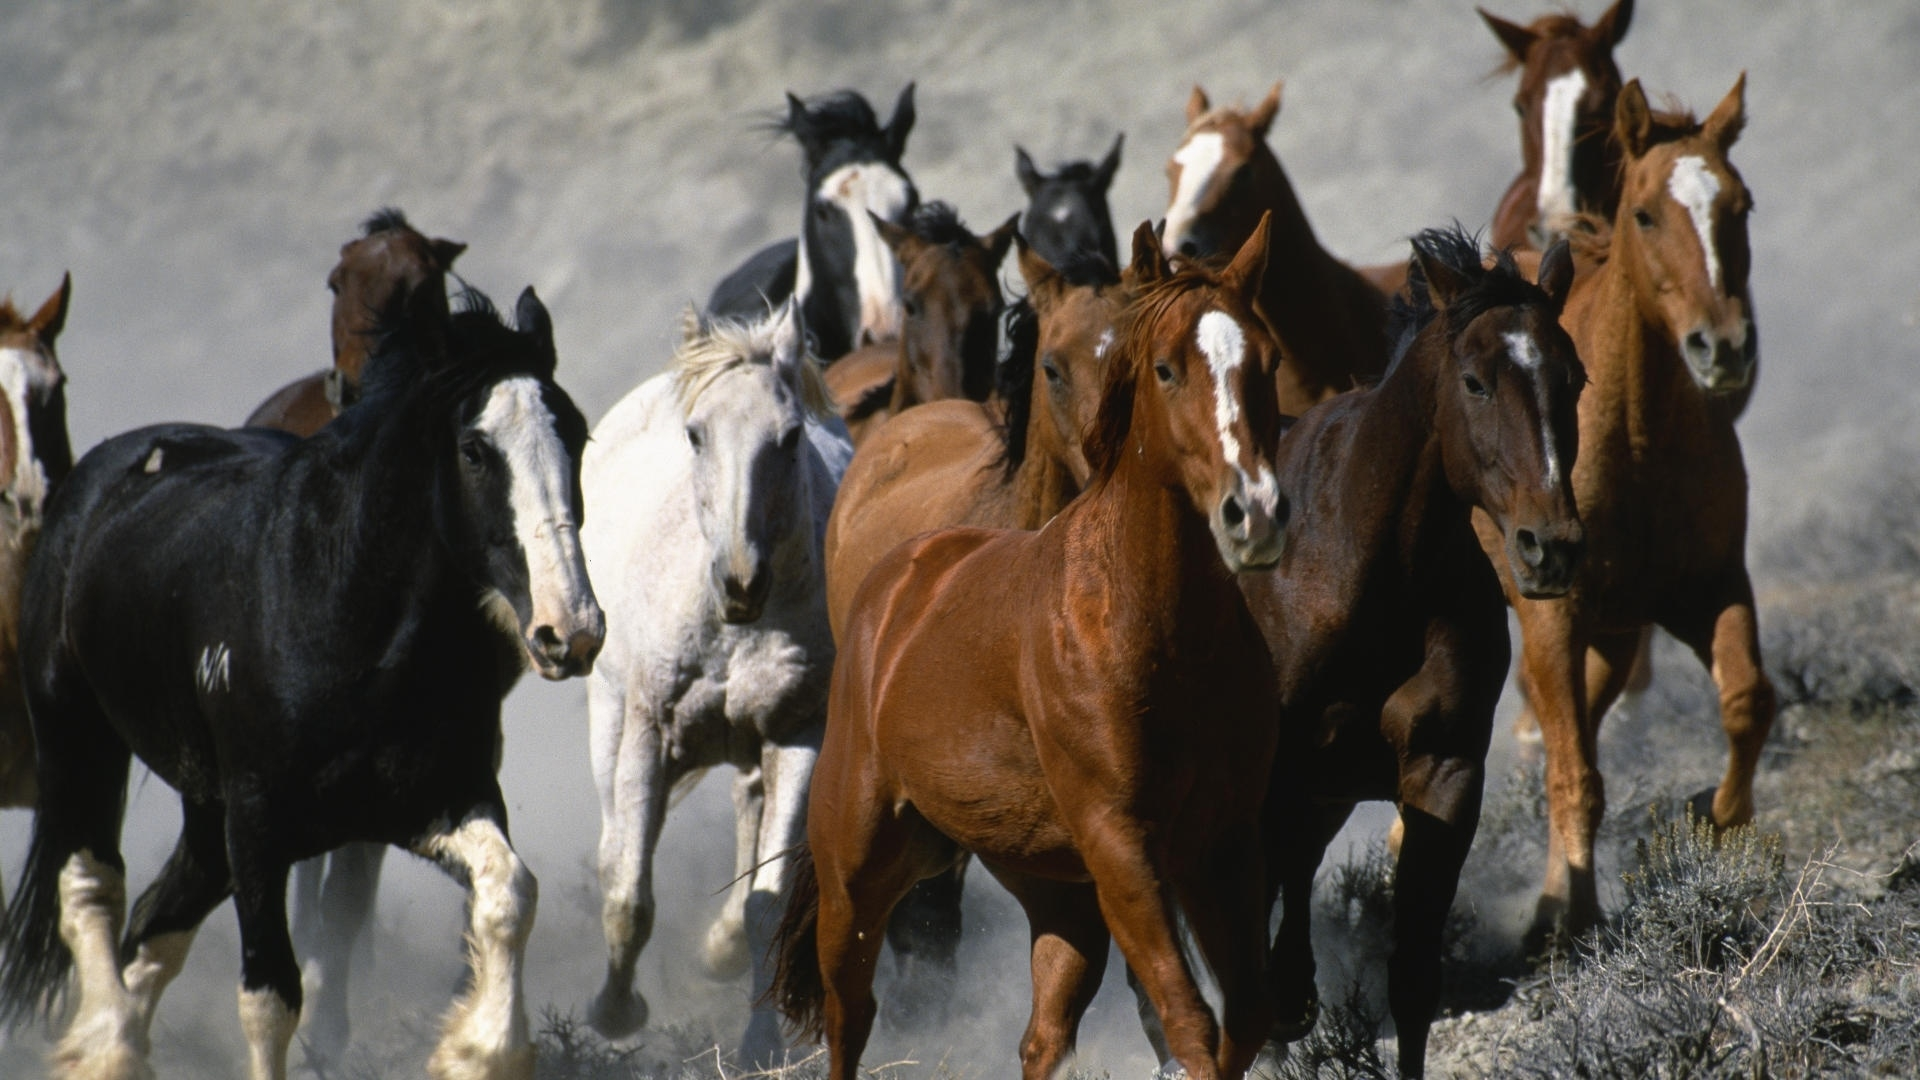 42234 download wallpaper Horses, Animals screensavers and pictures for free